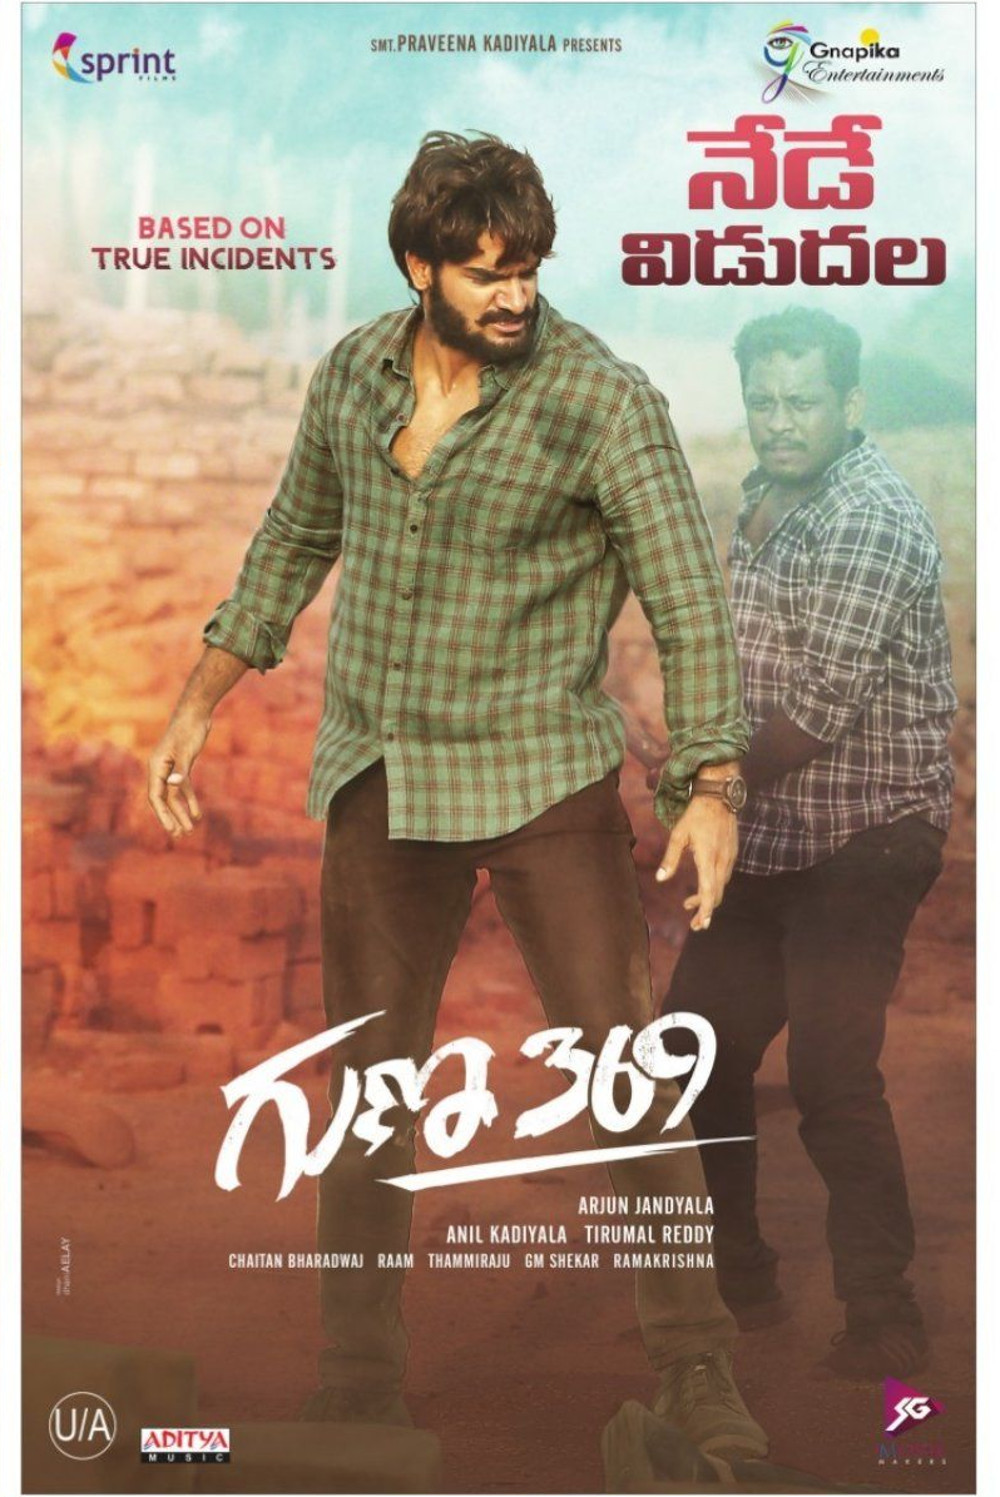 Actor Karthikeya in Guna 369 Movie Release Today Posters